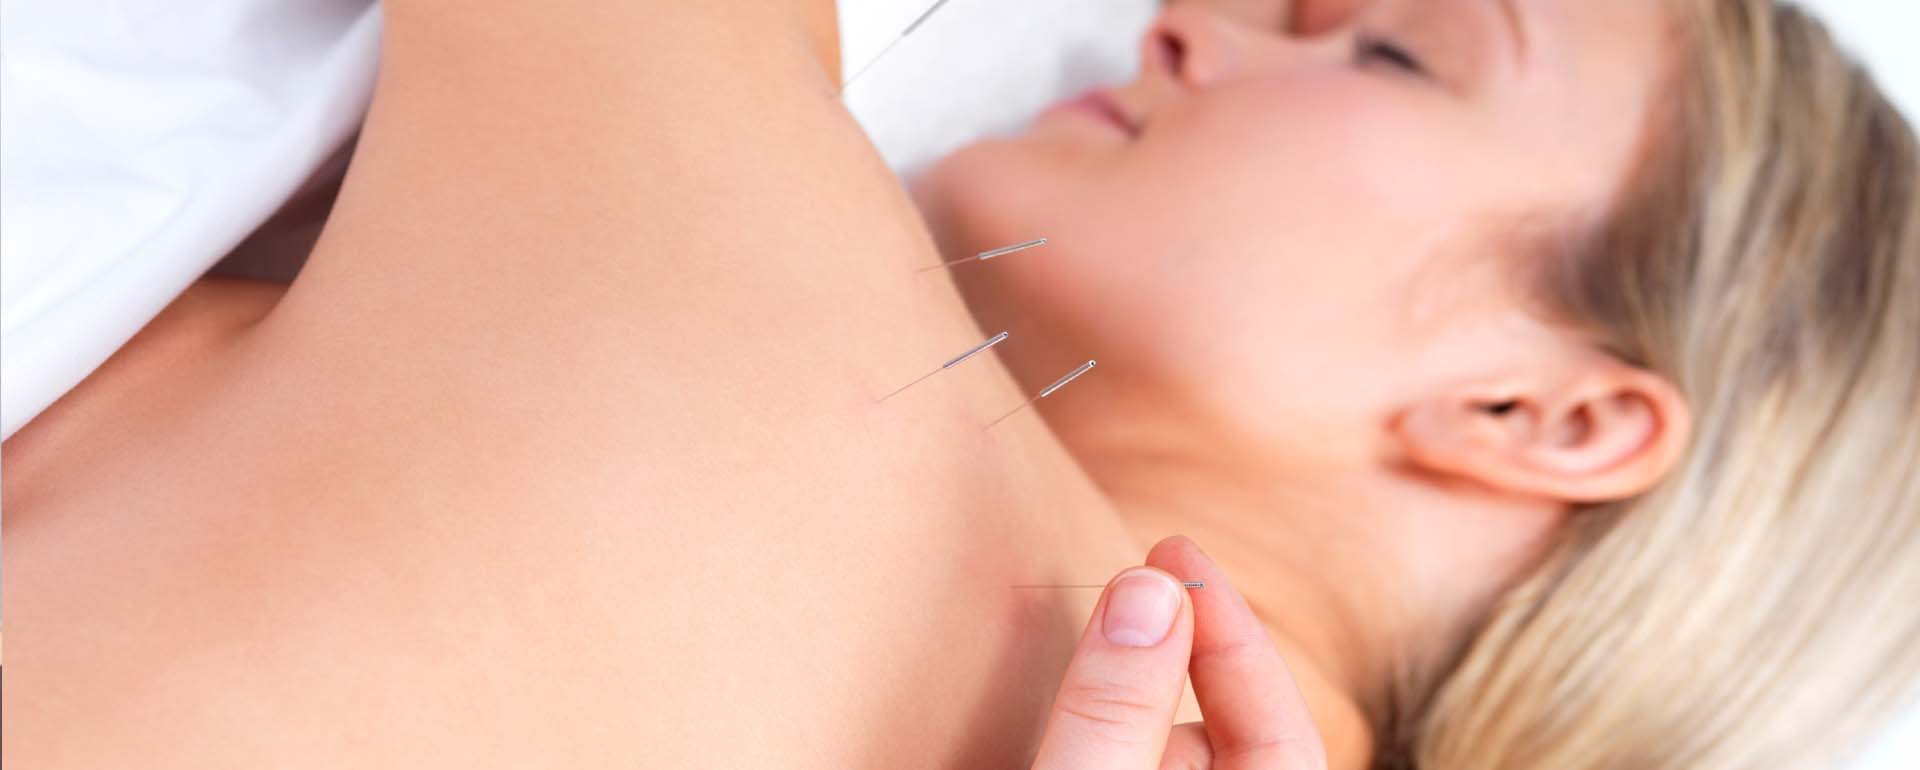 Dry Needling and Physical Therapy